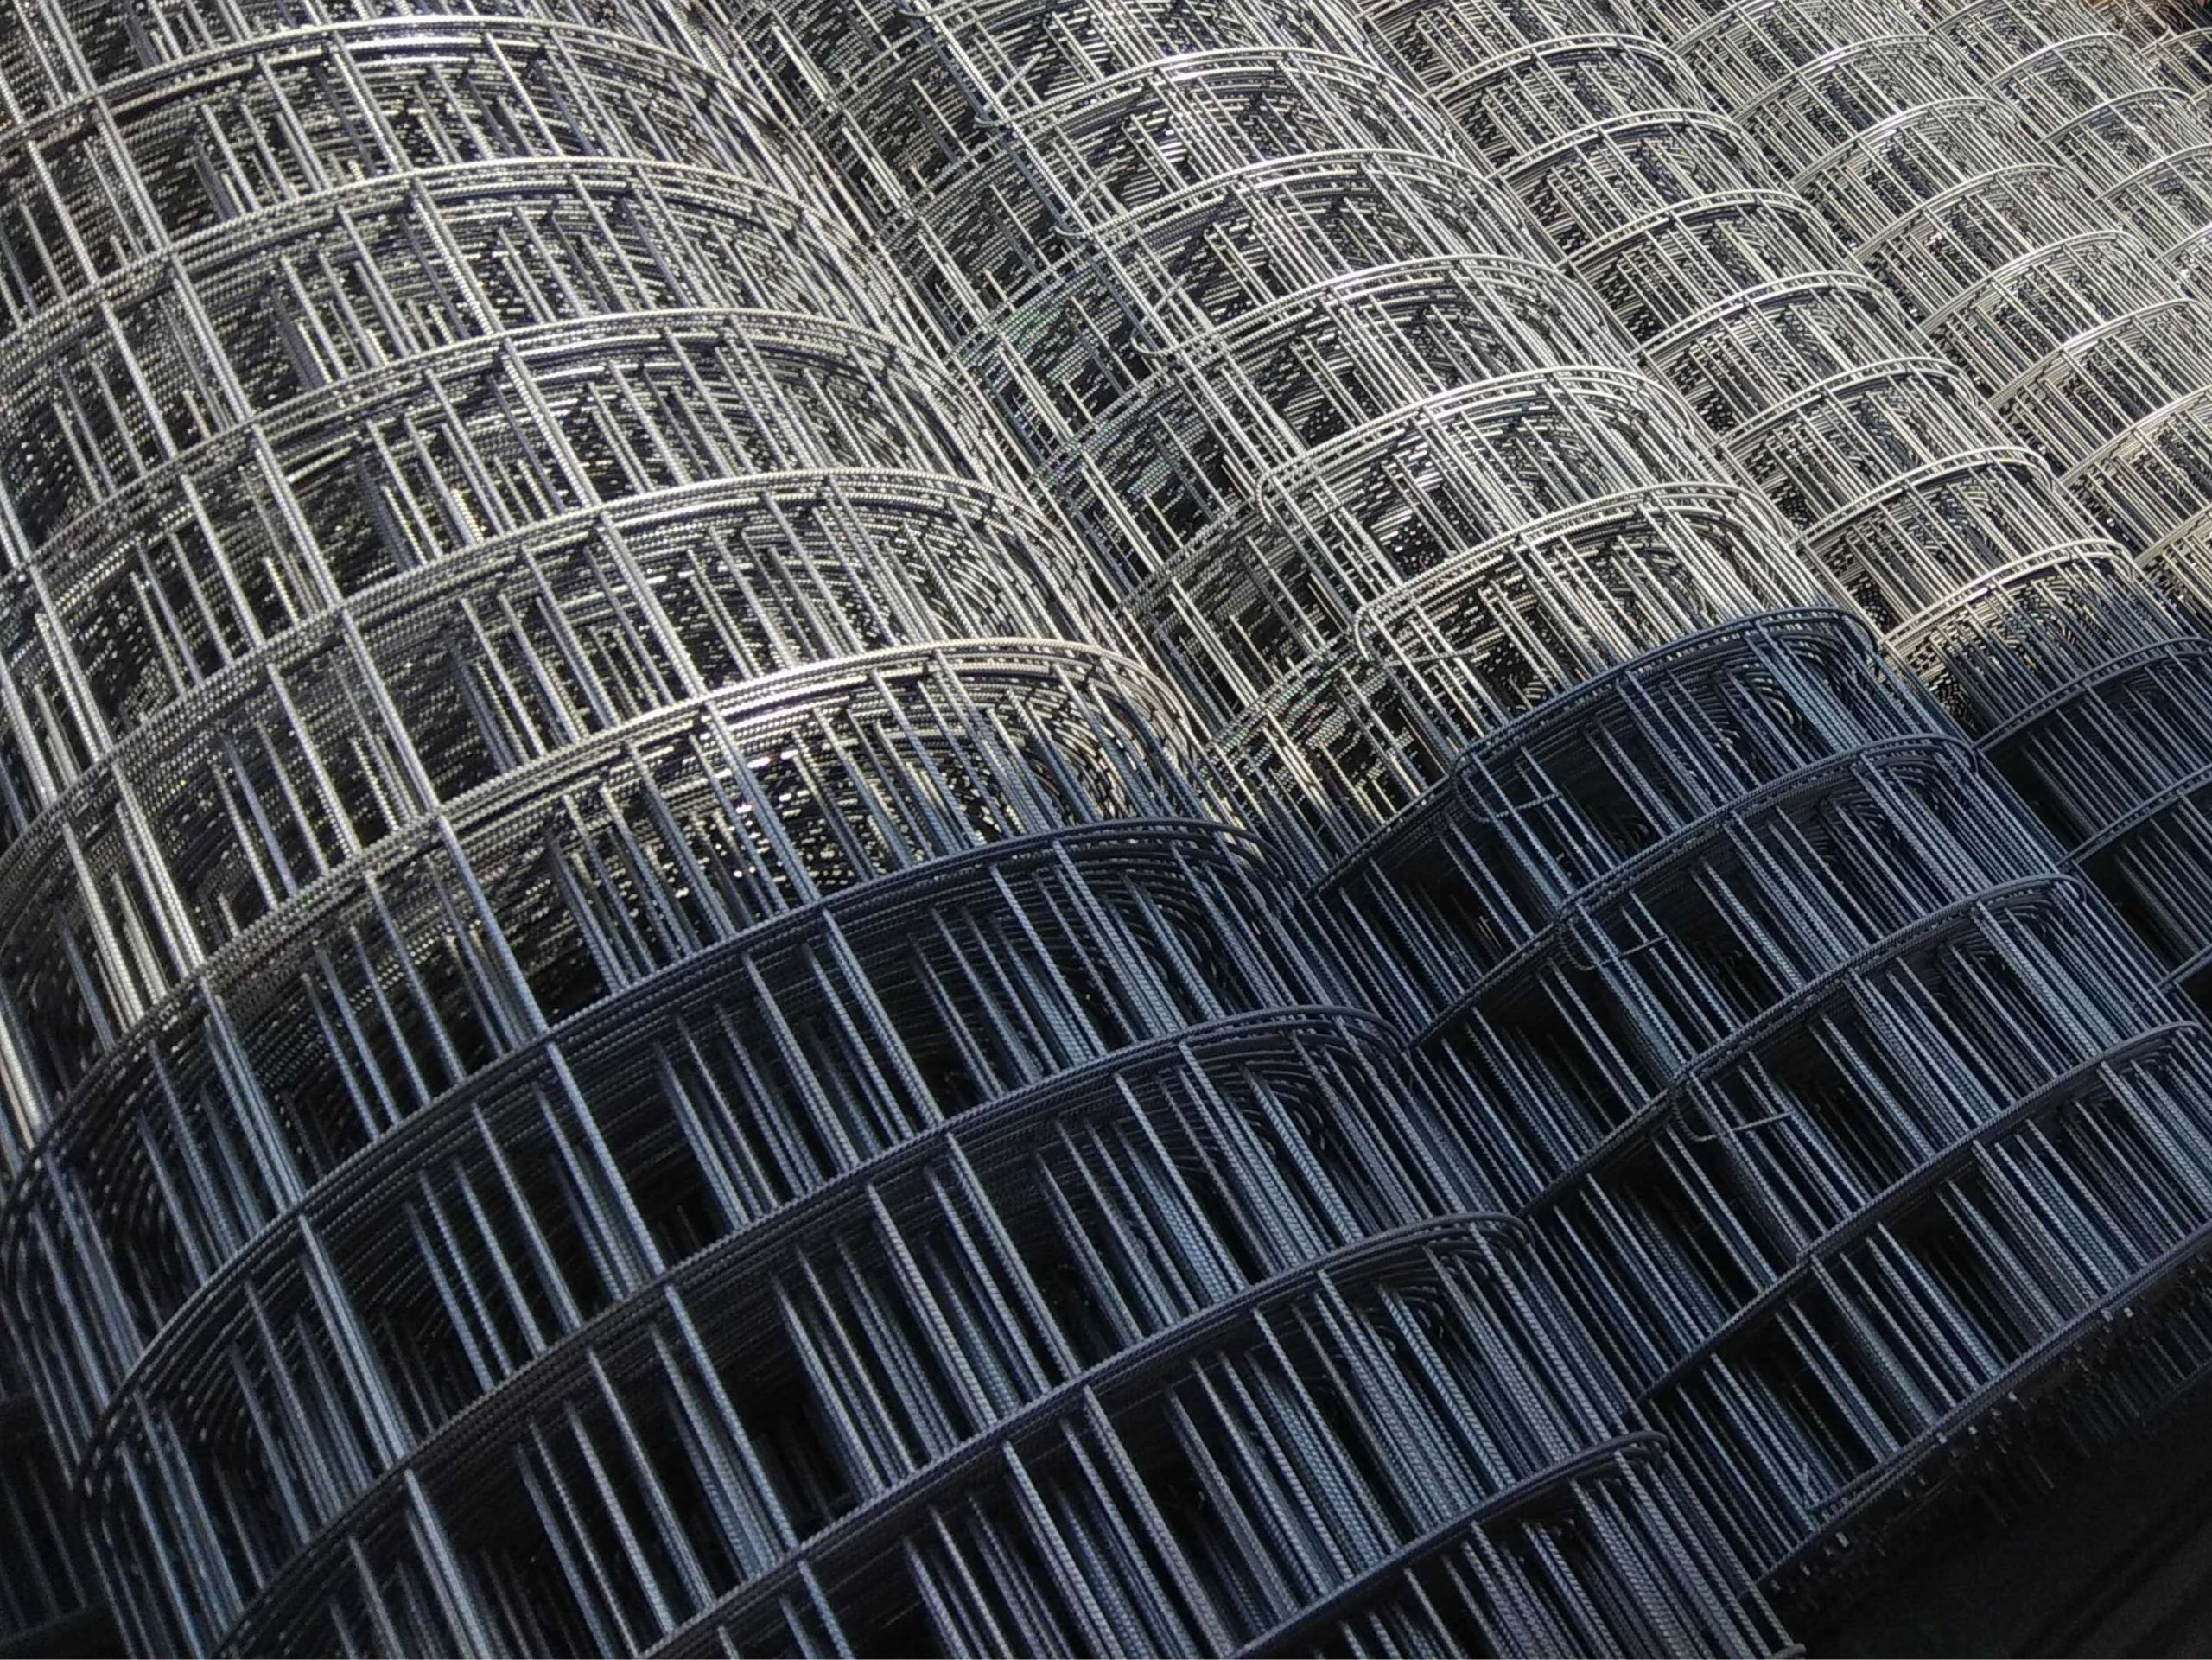 pengertian wiremesh